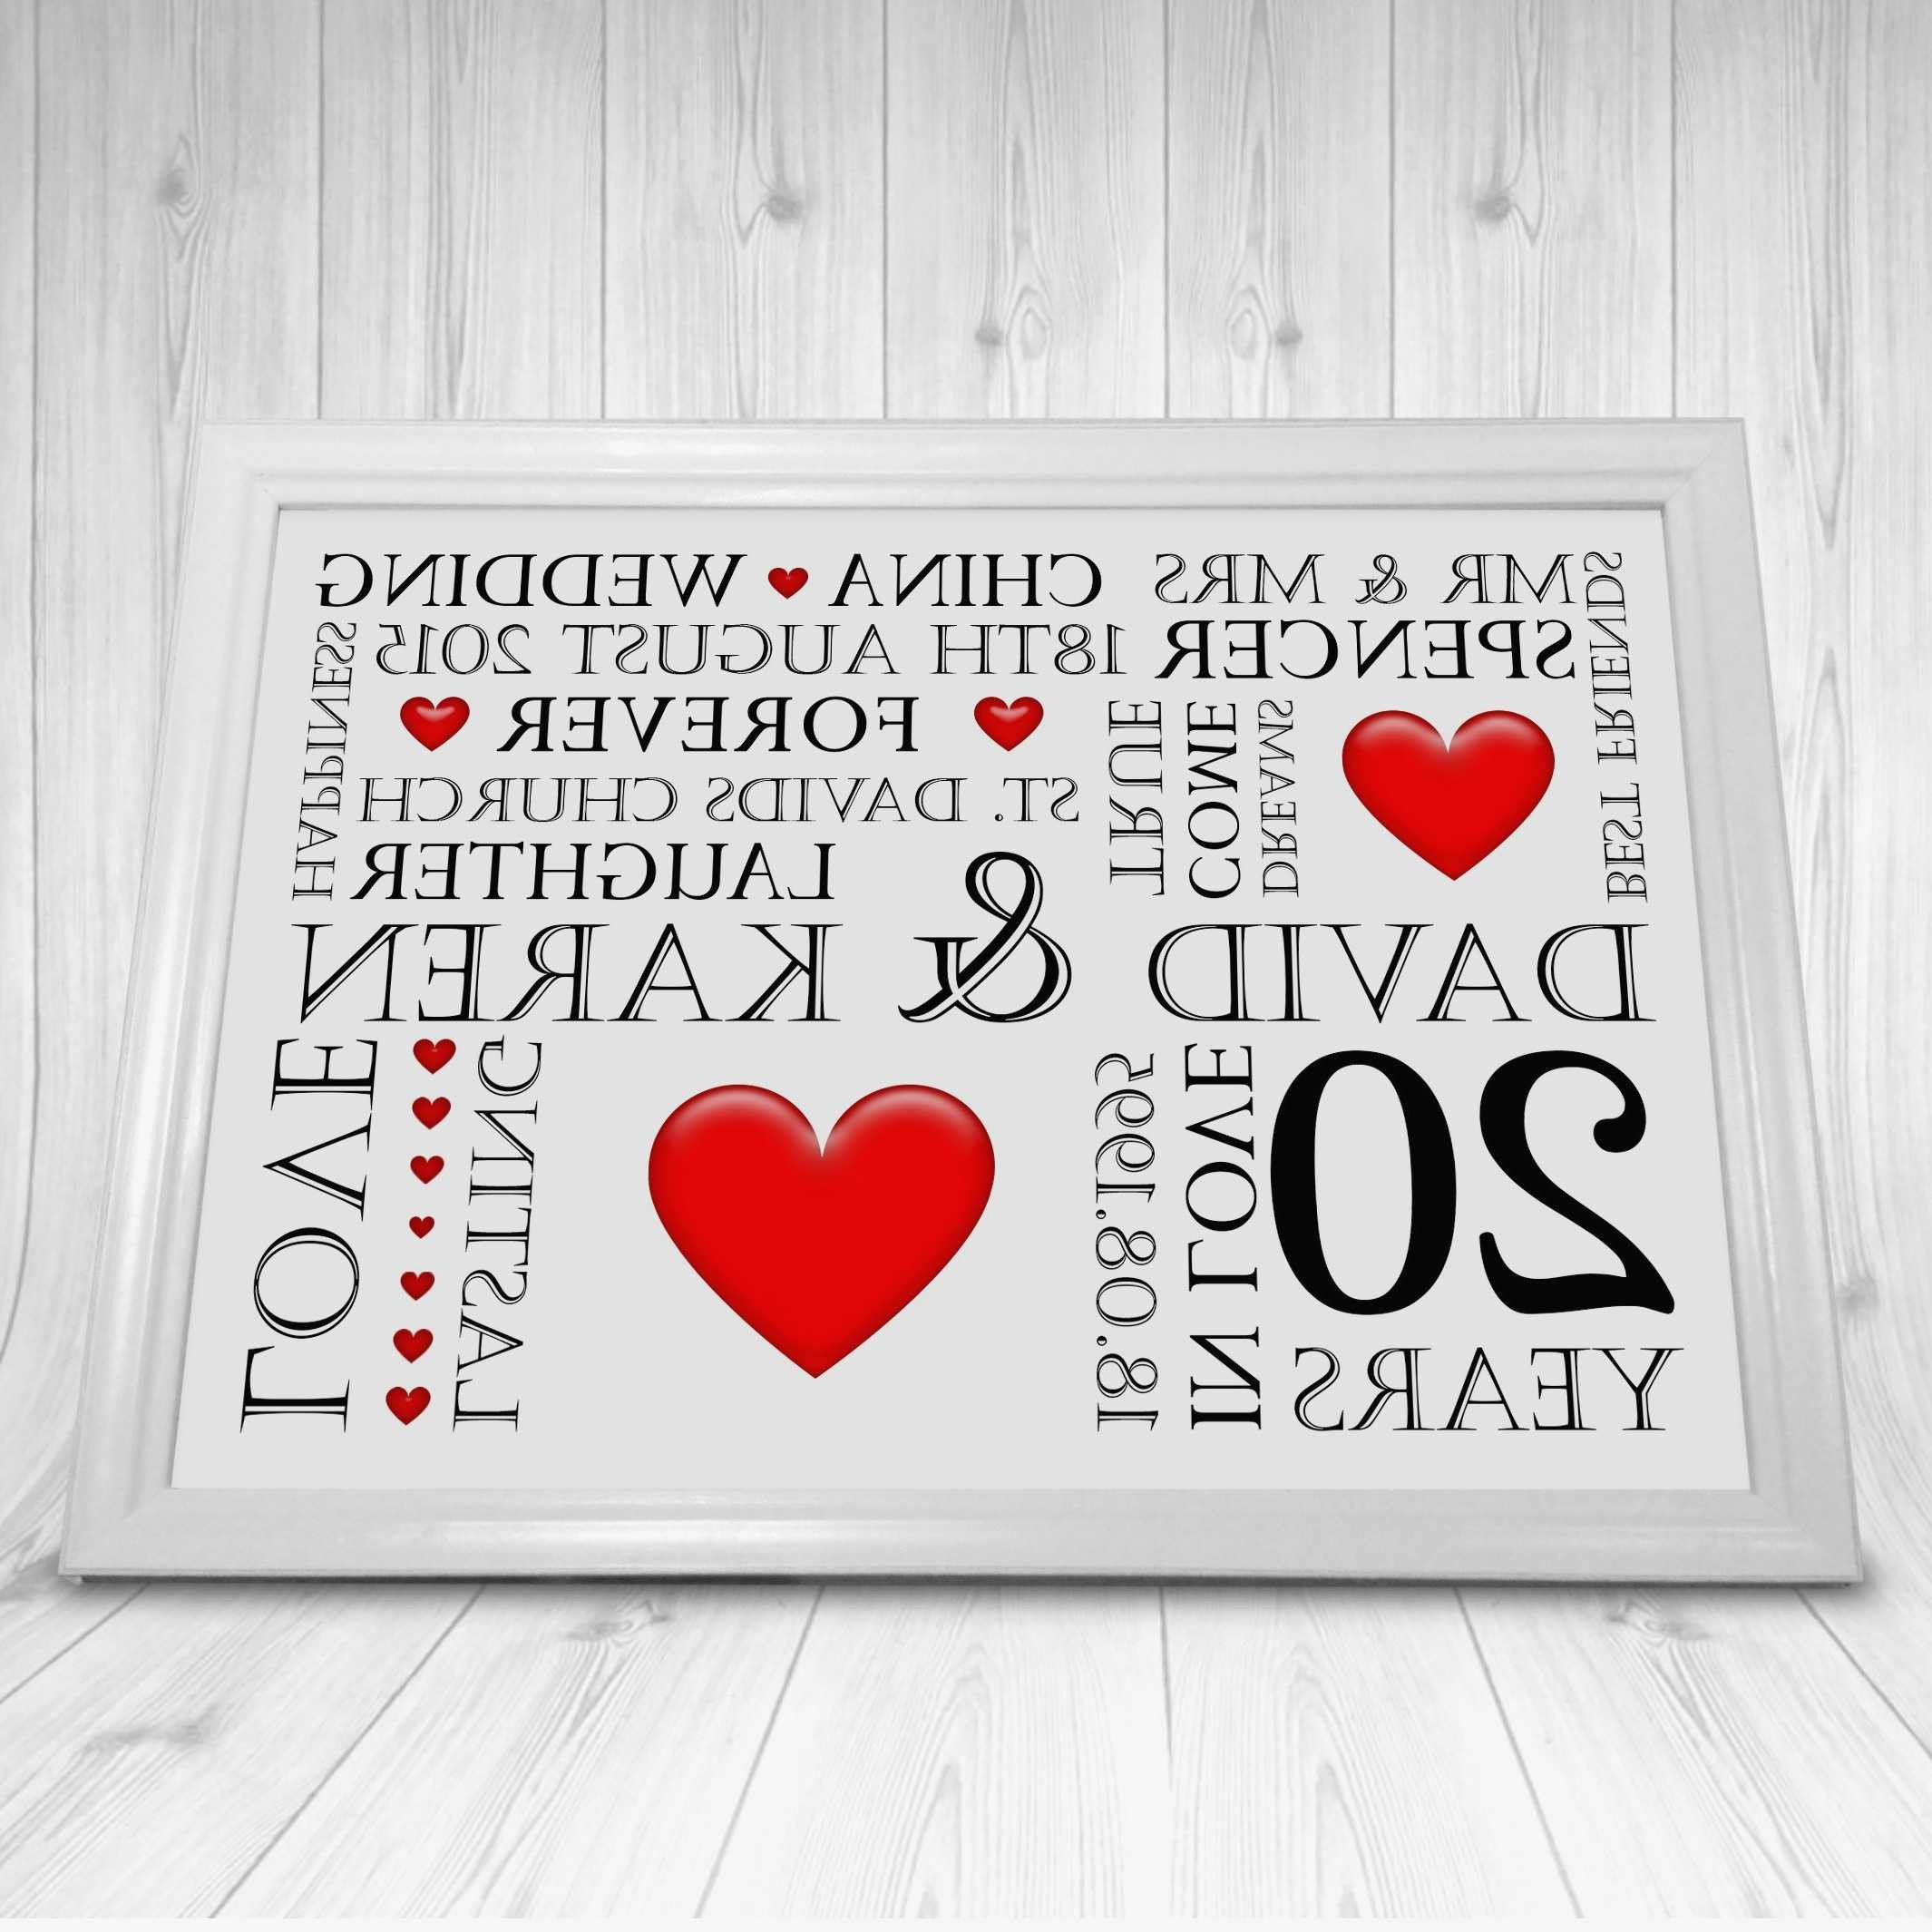 Best ideas about 20Th Wedding Anniversary Gift Ideas For Her . Save or Pin New 20th Wedding Anniversary Gift Ideas for Her Now.